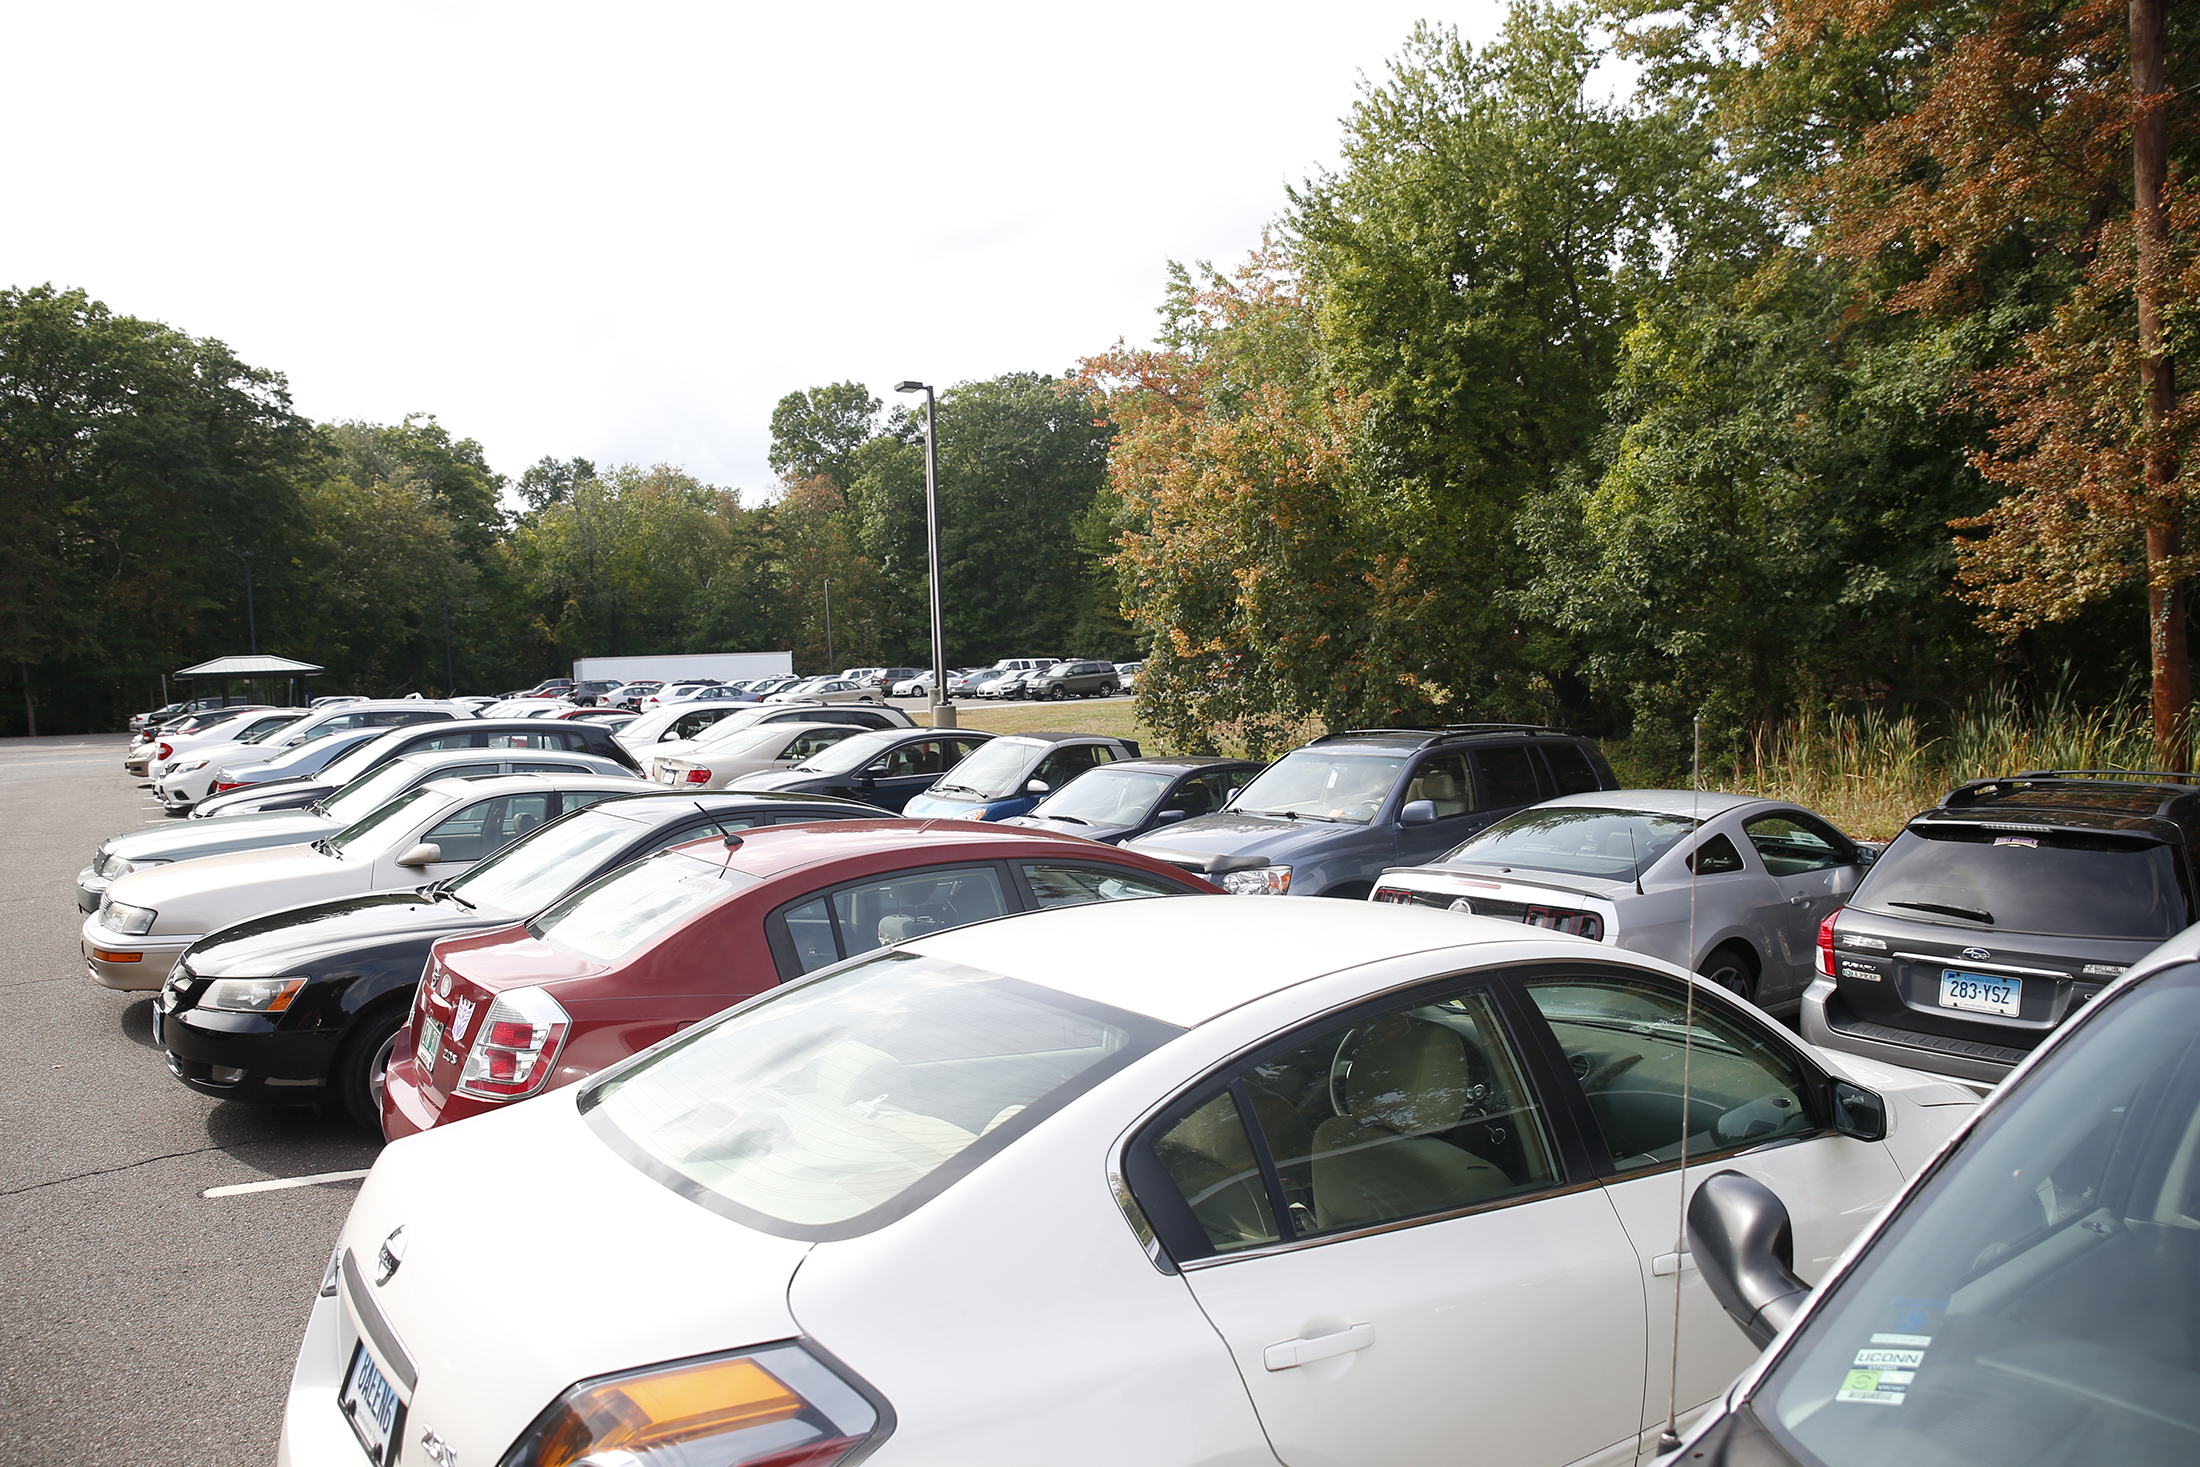 Pictures of I Lot show the commuter parking spots full during the day.  Rumor has it UConn might have oversold the parking passes. (File photo/The Daily Campus)